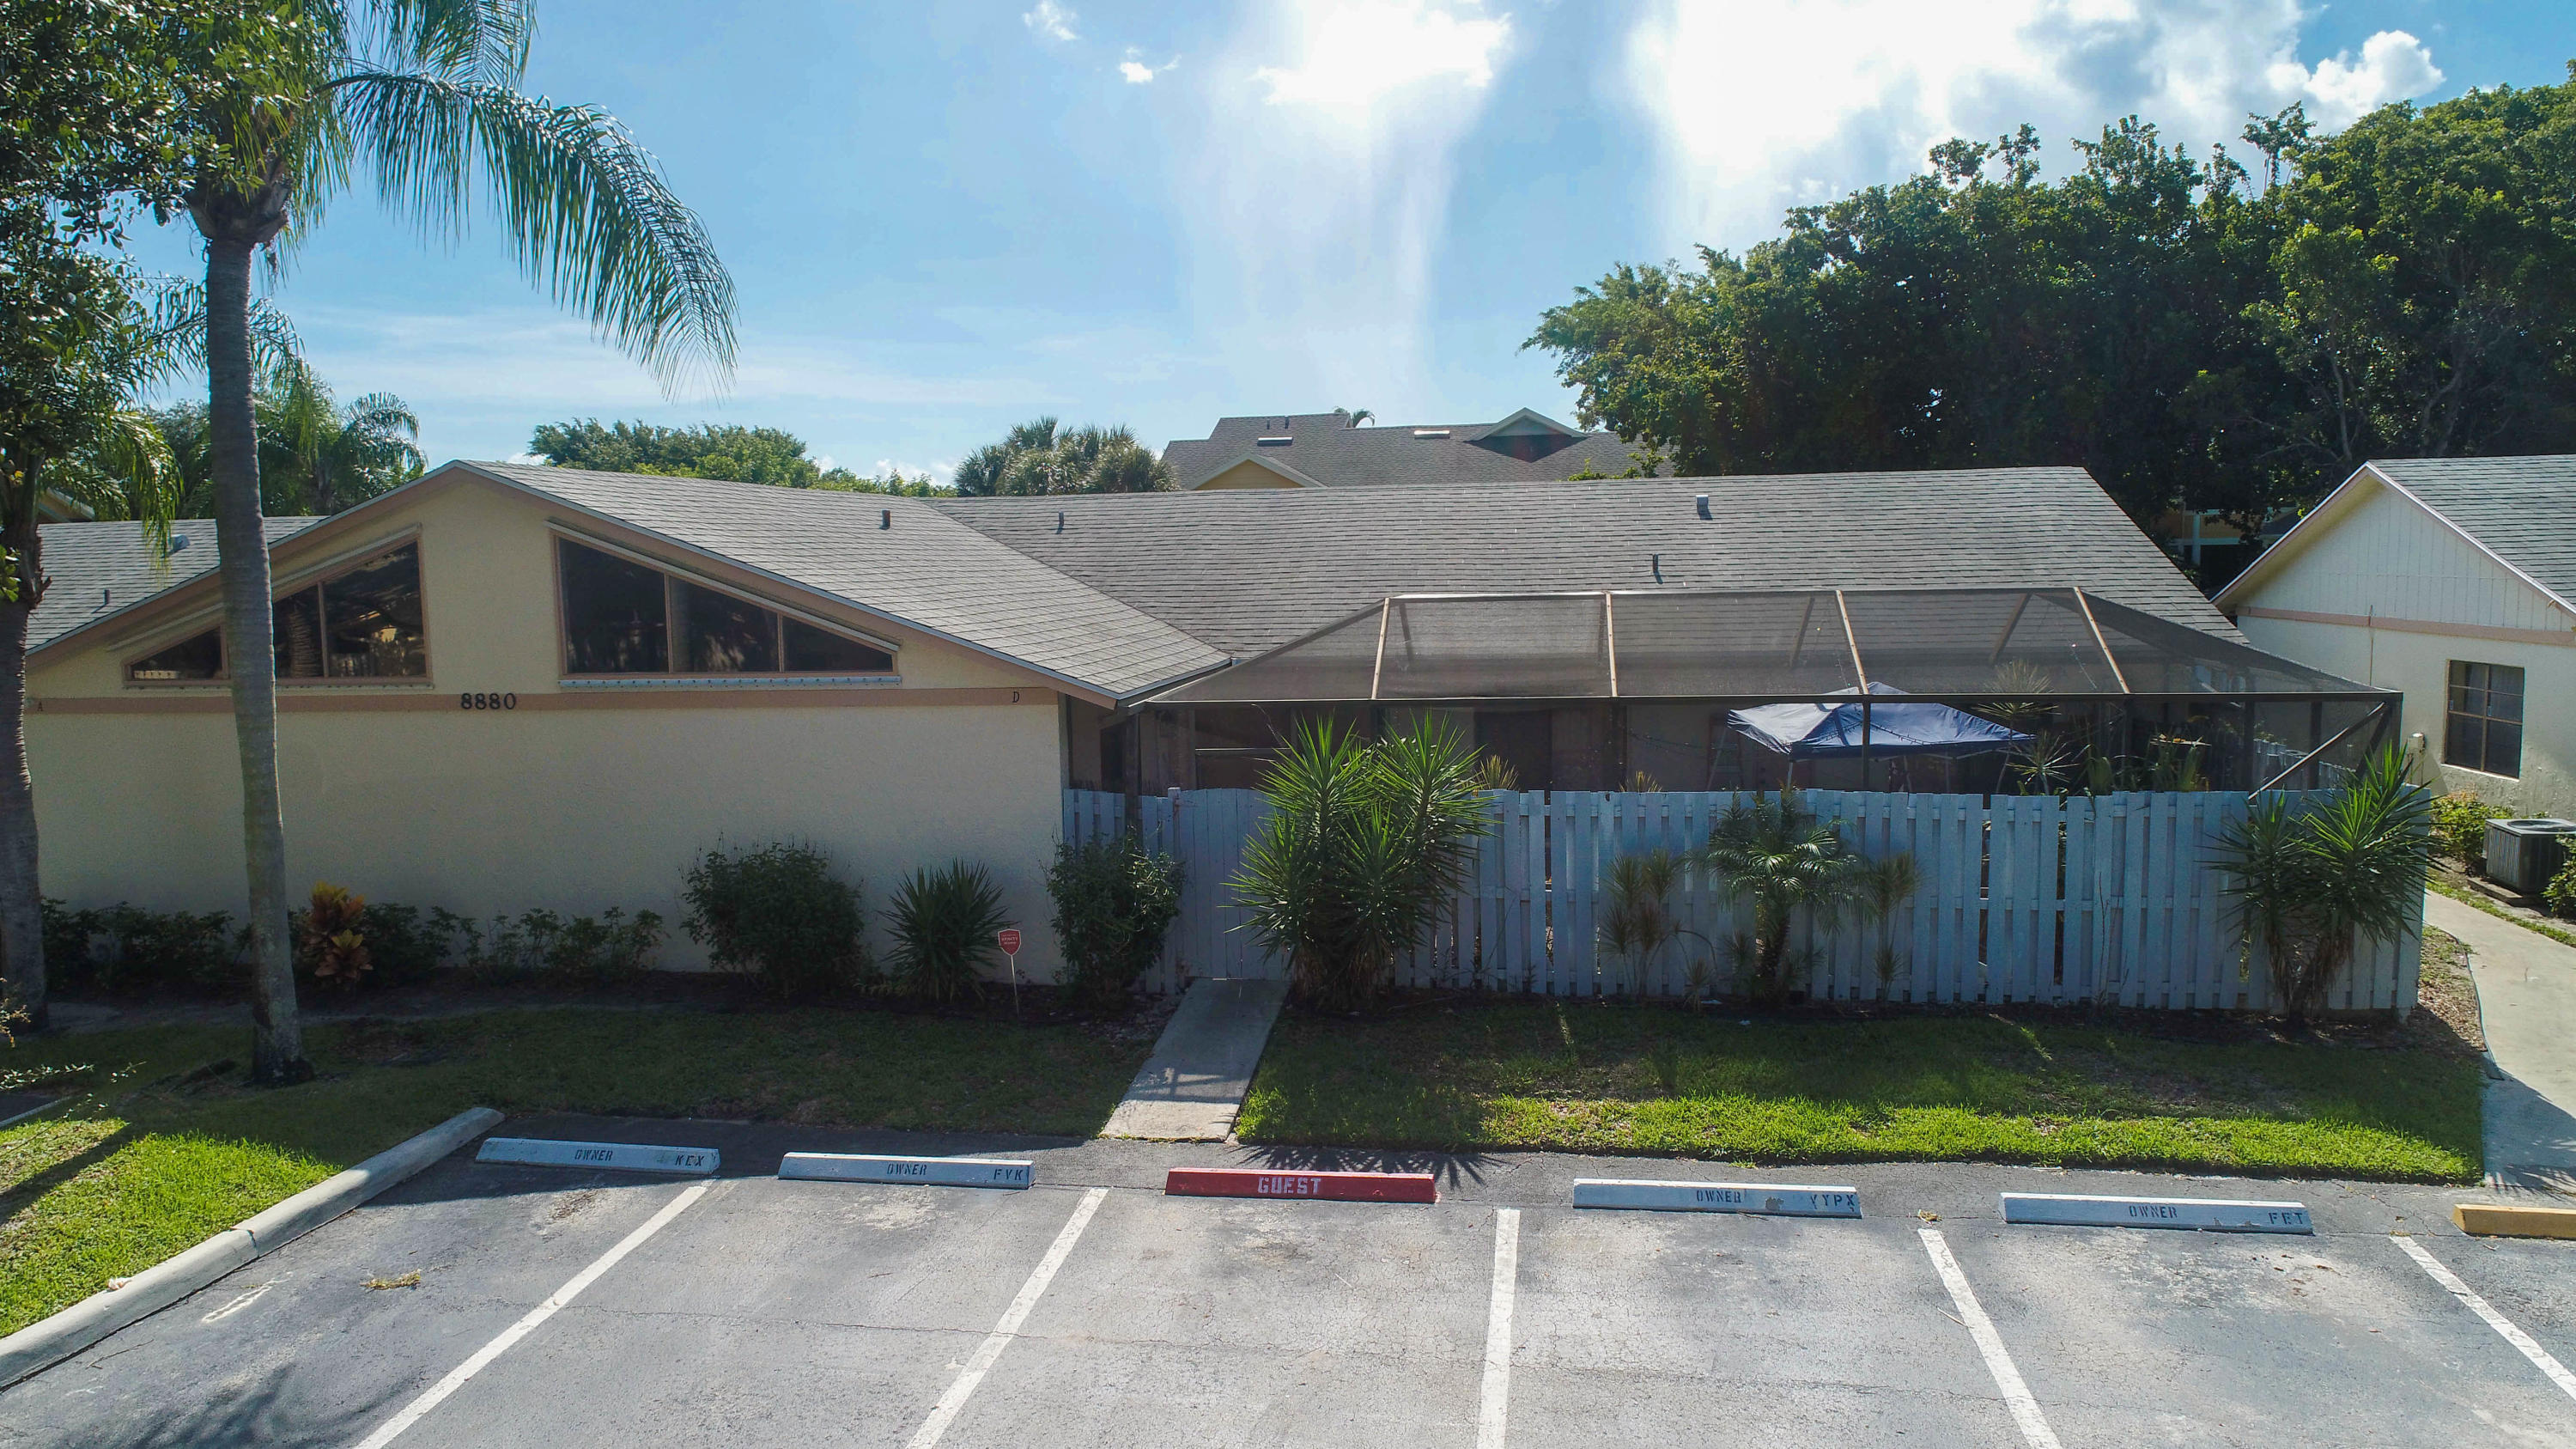 8880 Thumbwood Circle, Boynton Beach, FL 33436